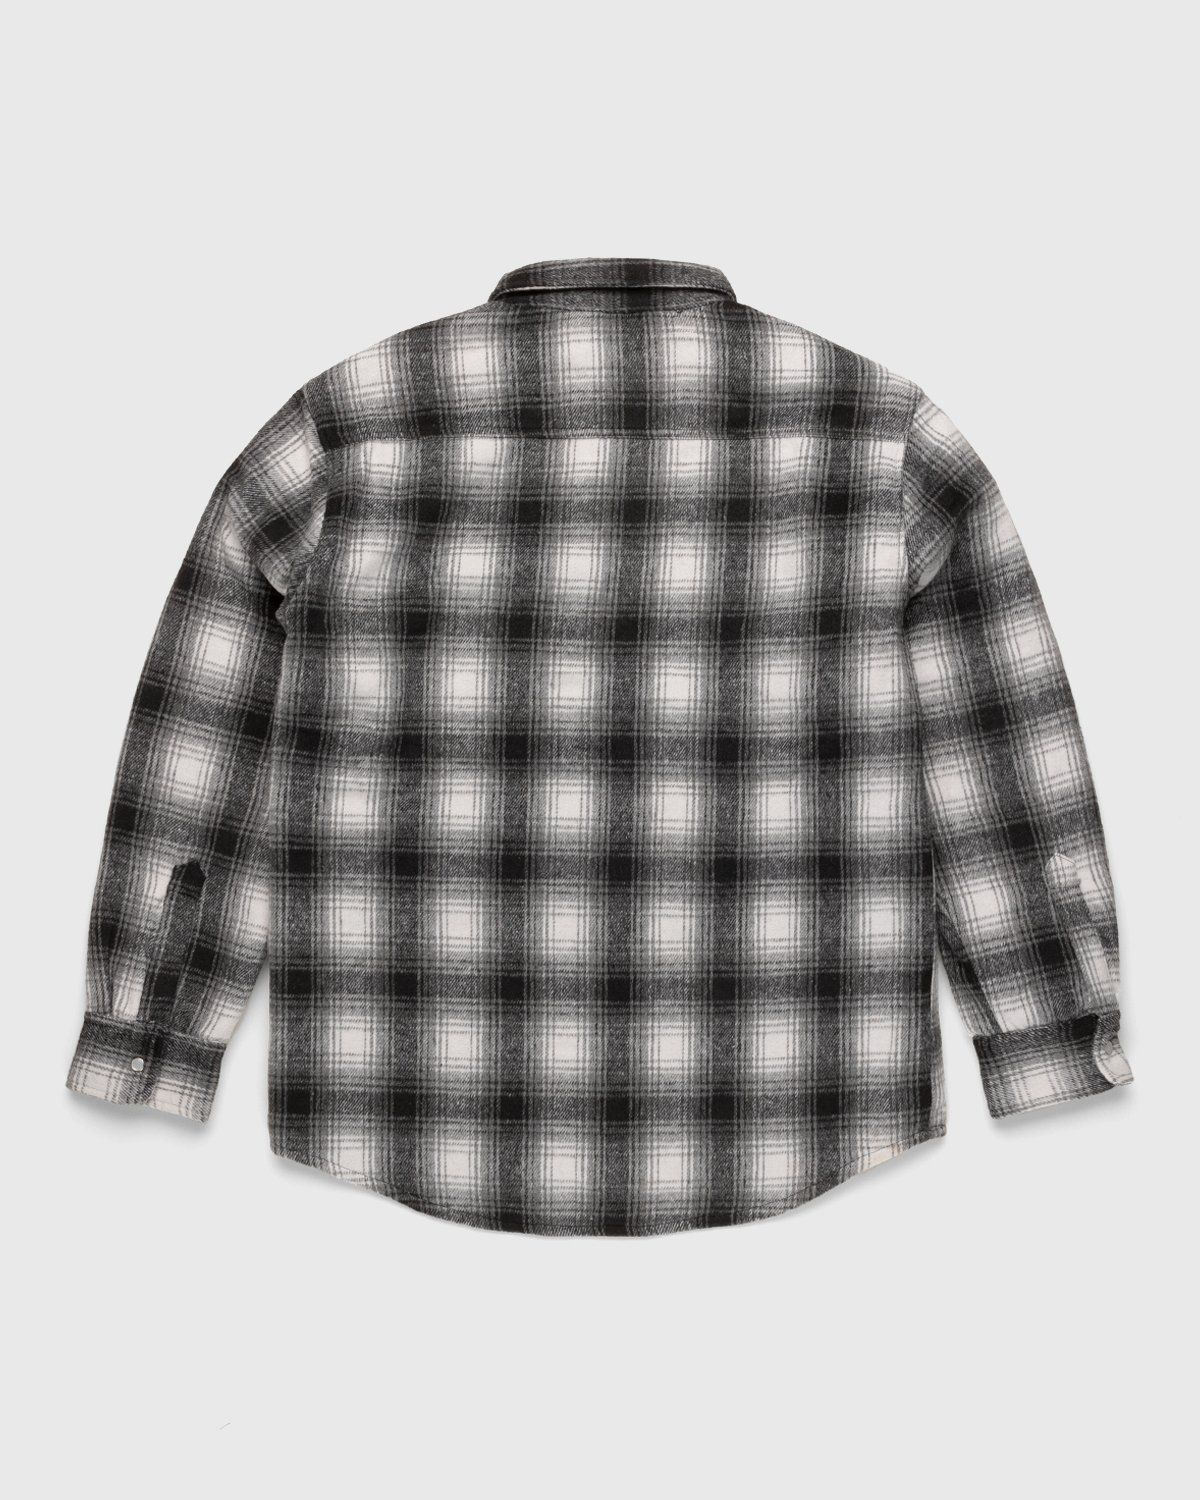 Noon Goons — Tahoe Quilted Flannel Grey - Image 2